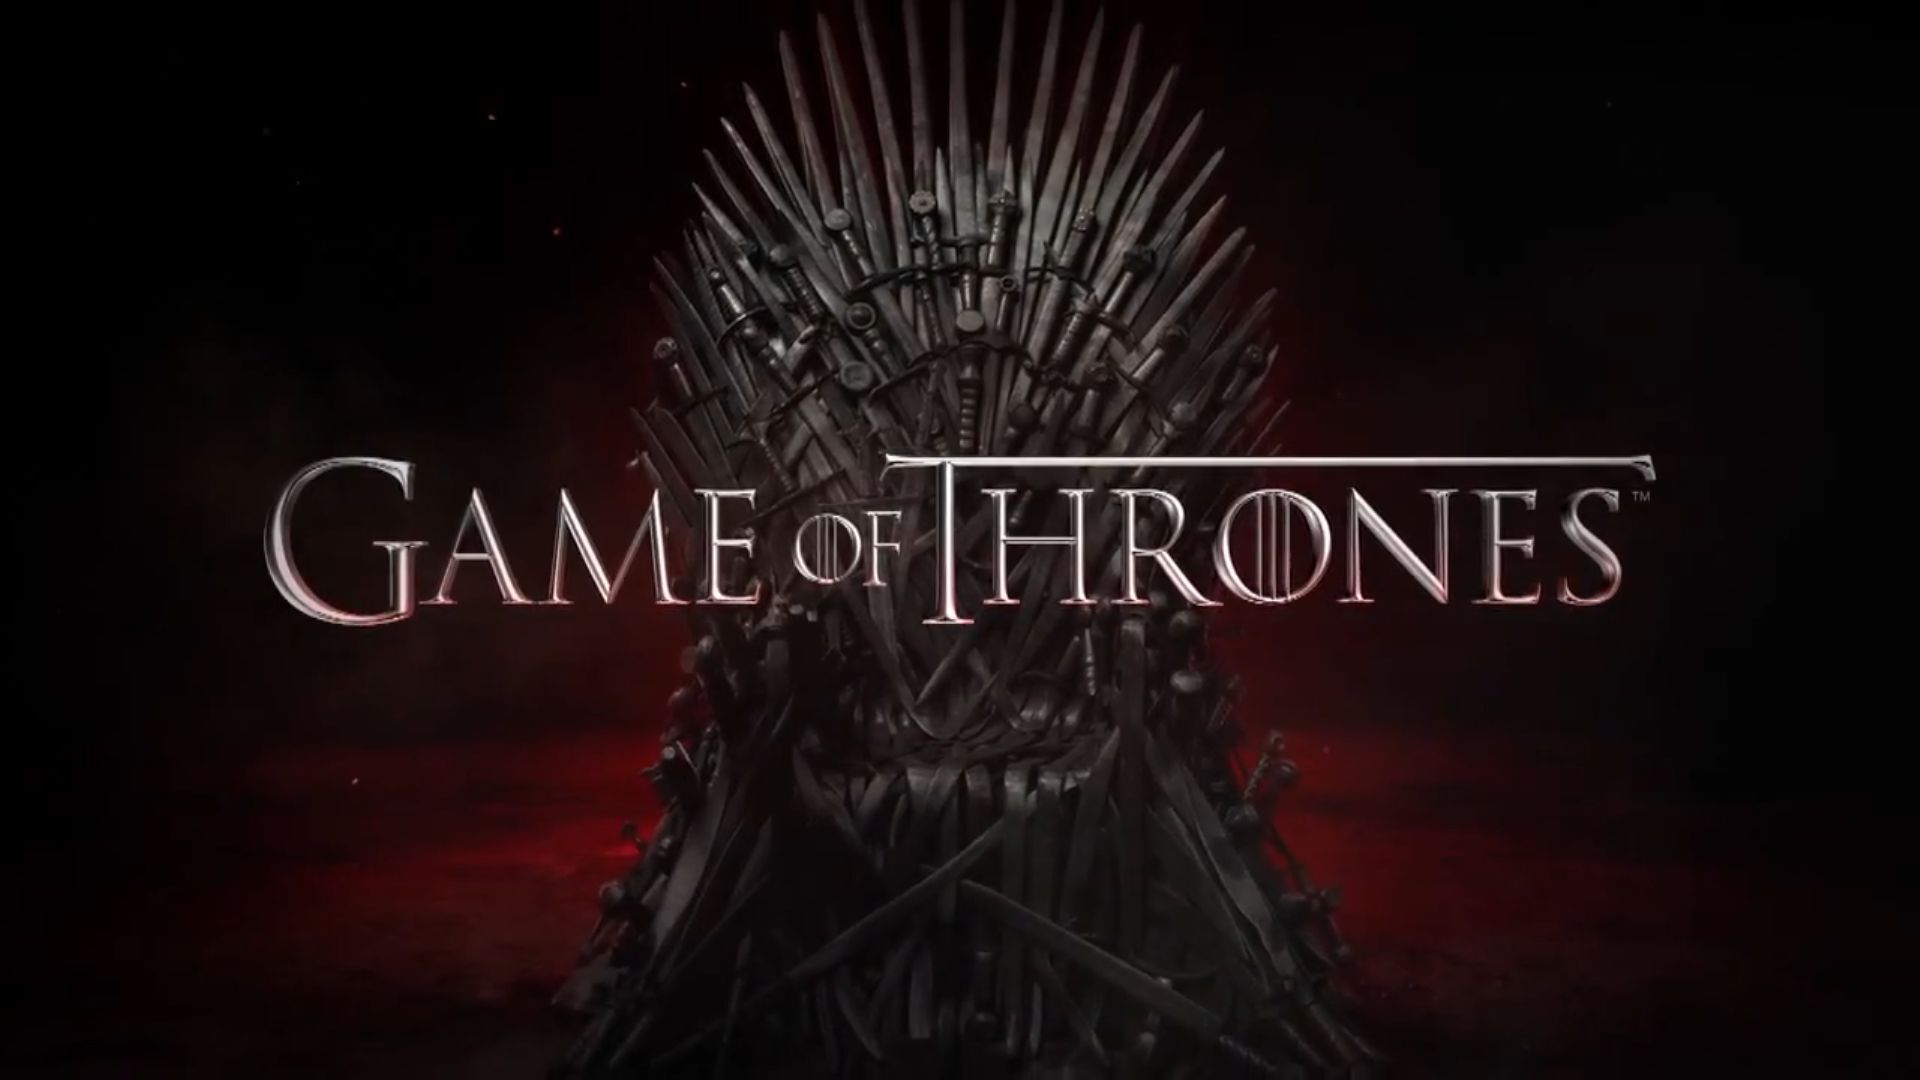 Pretty Awesome Fan Made Posters For Game Of Thrones Season 8